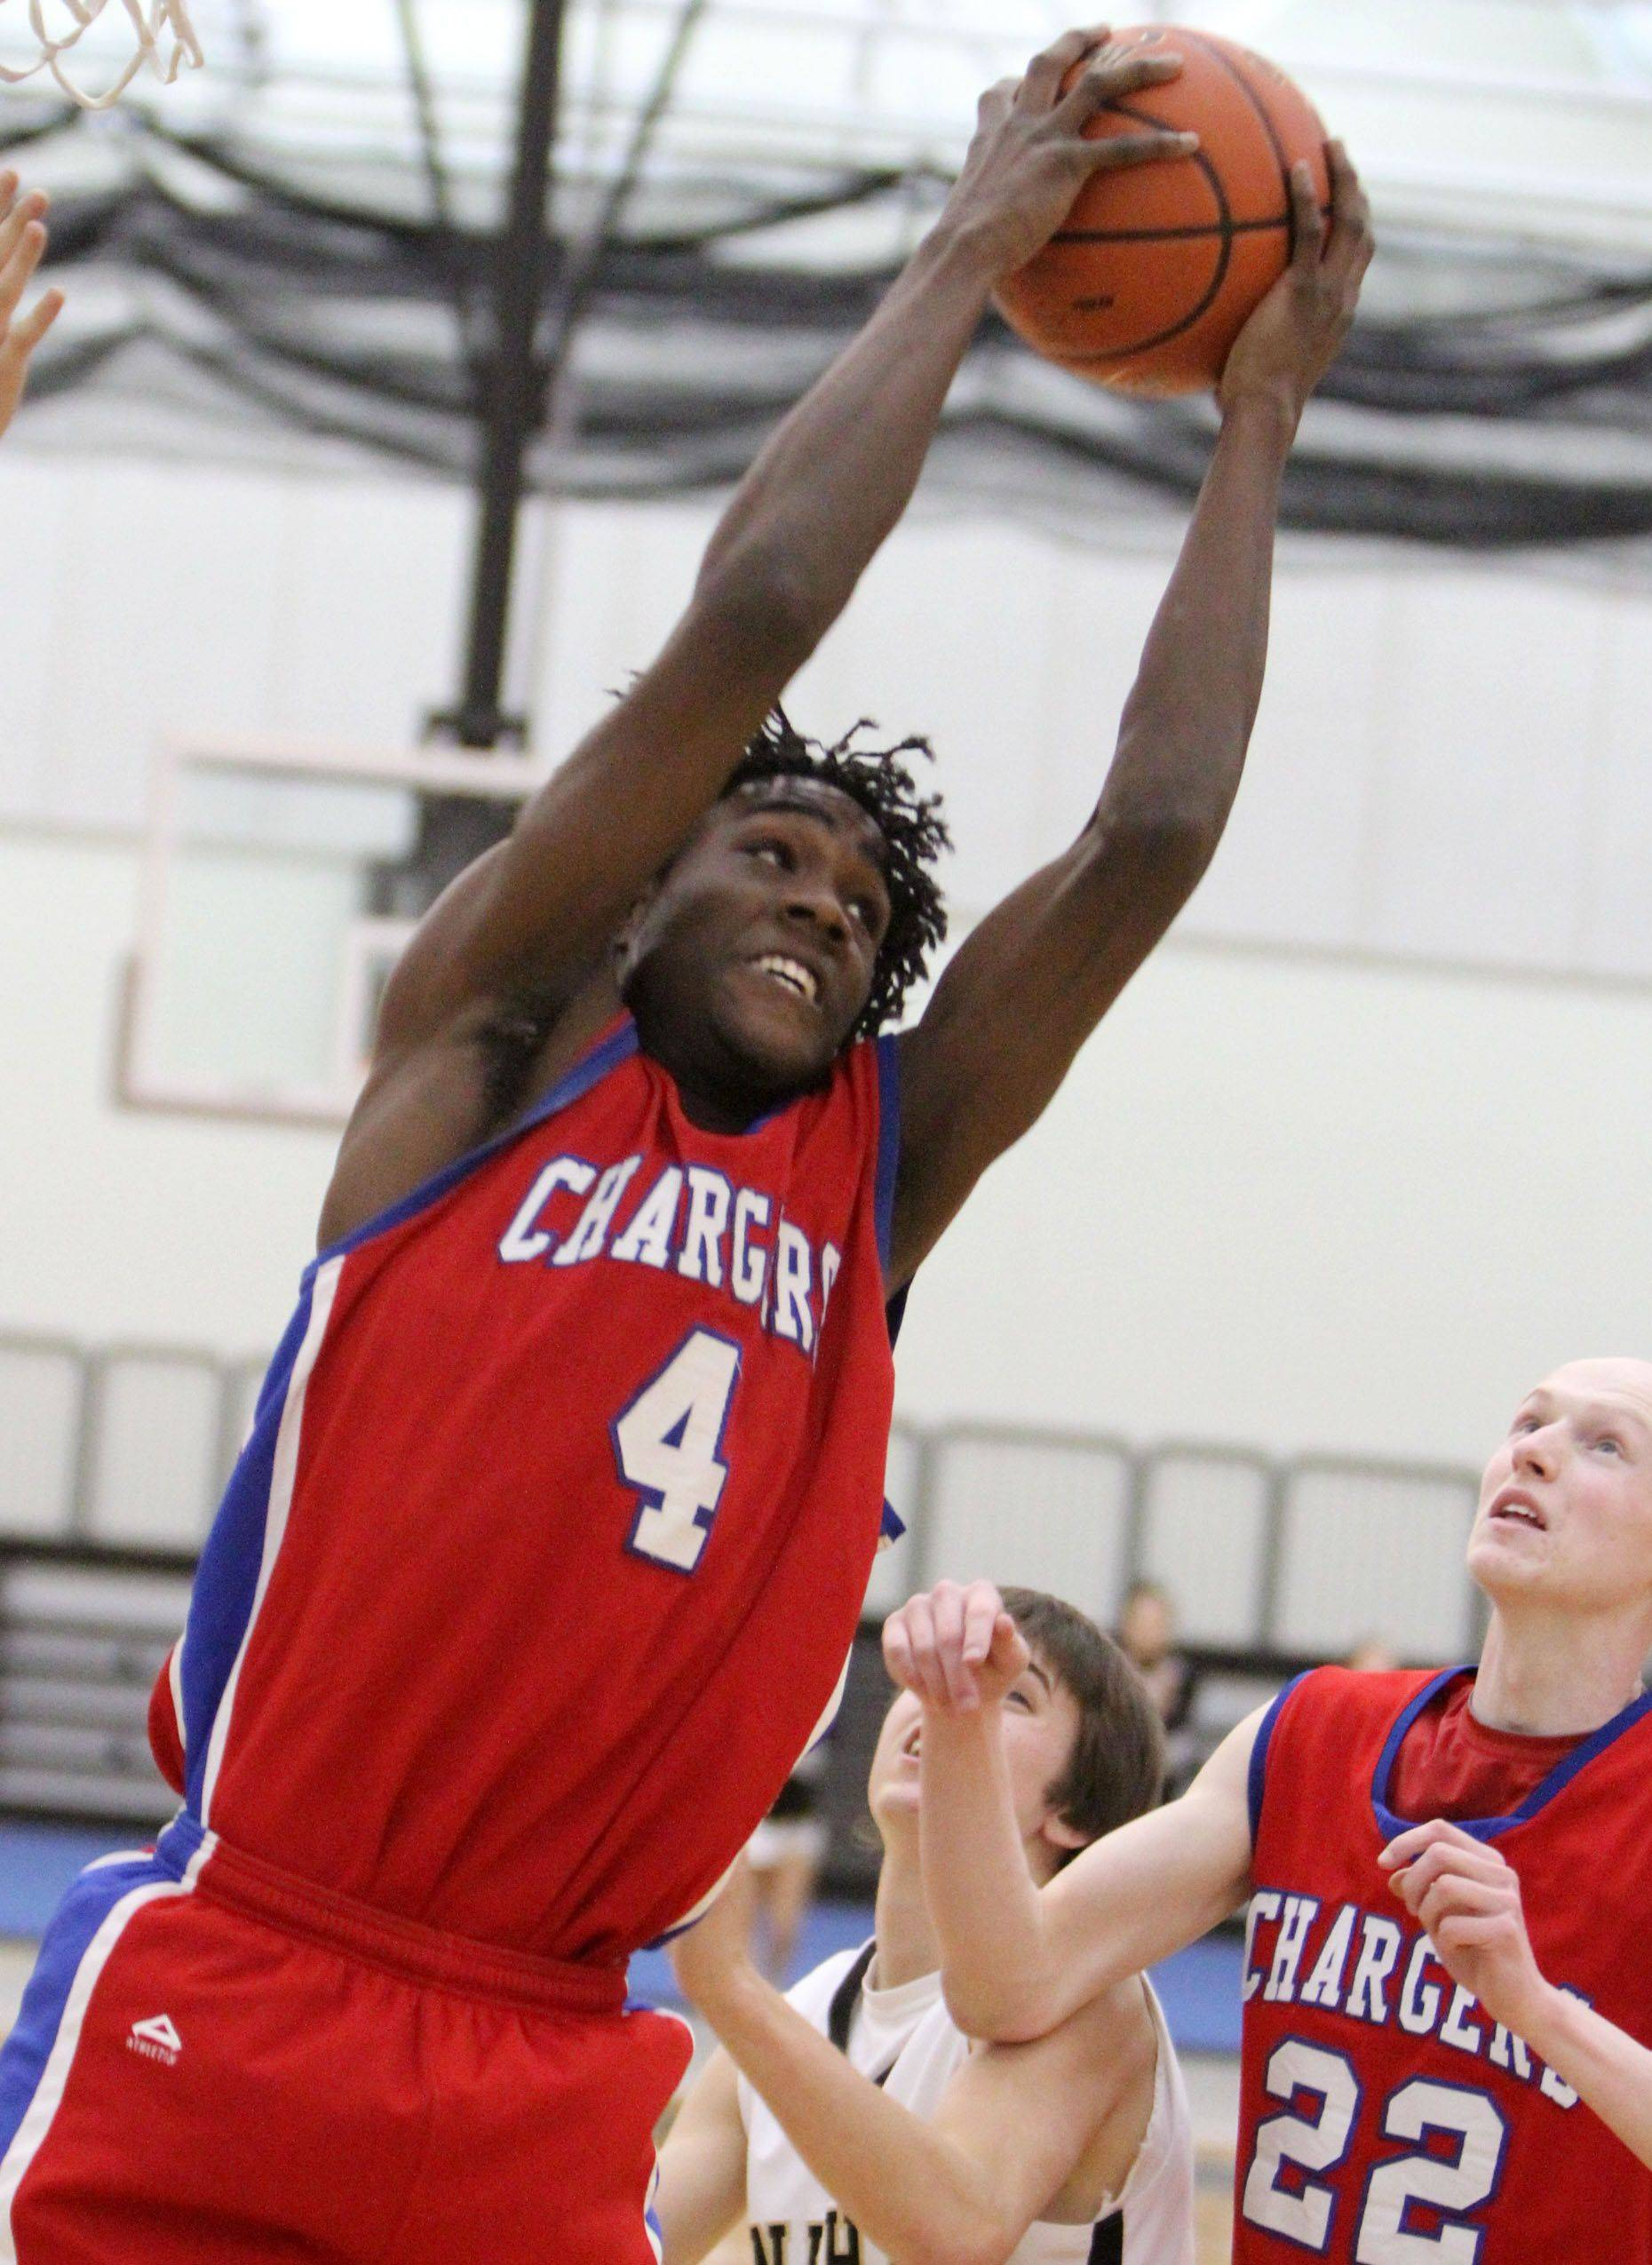 Dundee-Crown's Jamel Kimbrough pulls down a rebound against Grayslake North Friday in Grayslake.